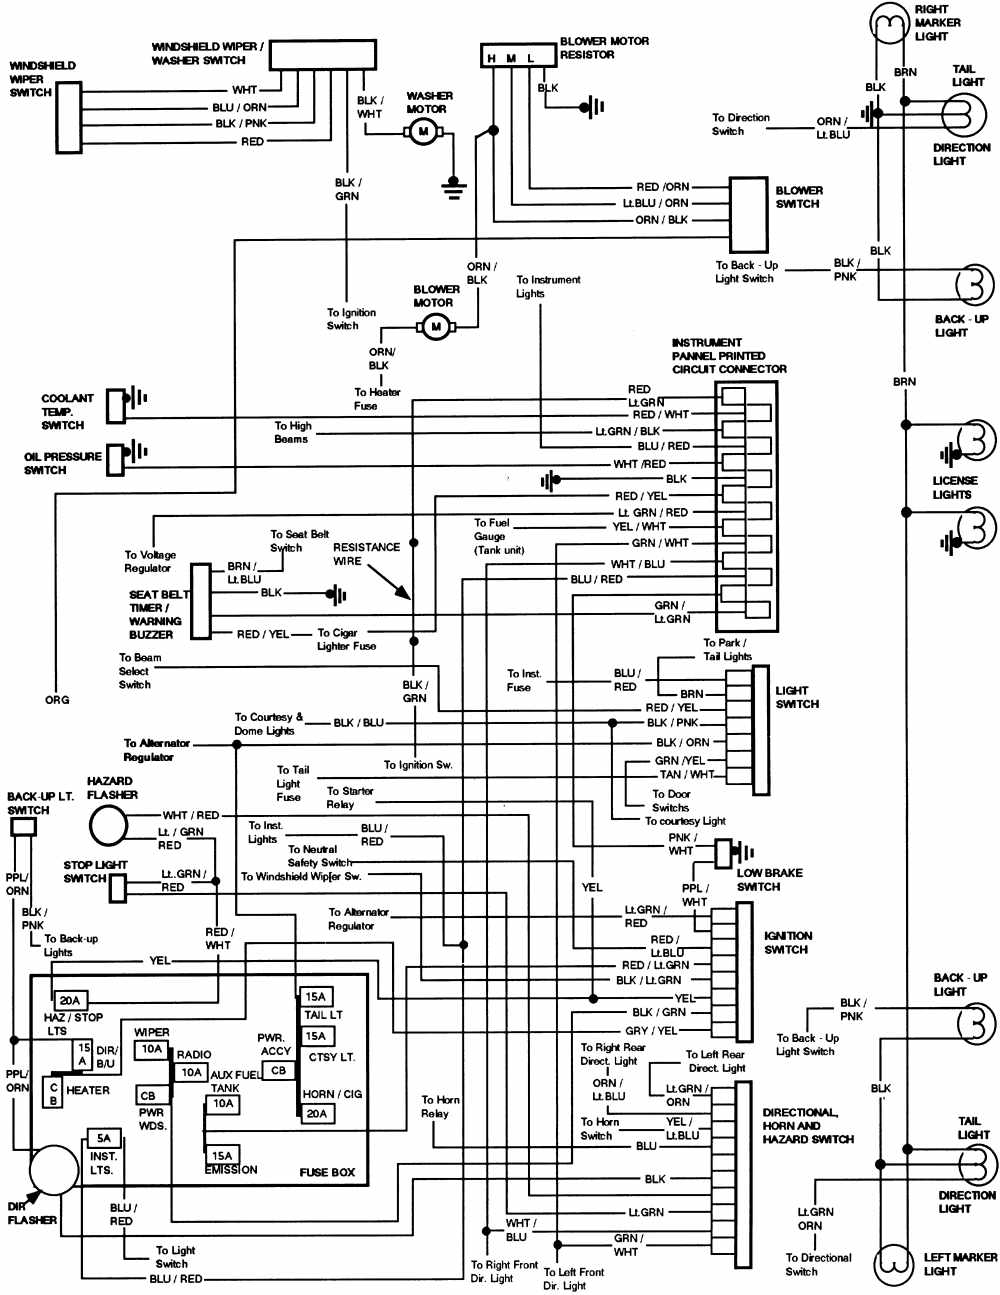 05 dodge 2500 wiring diagram